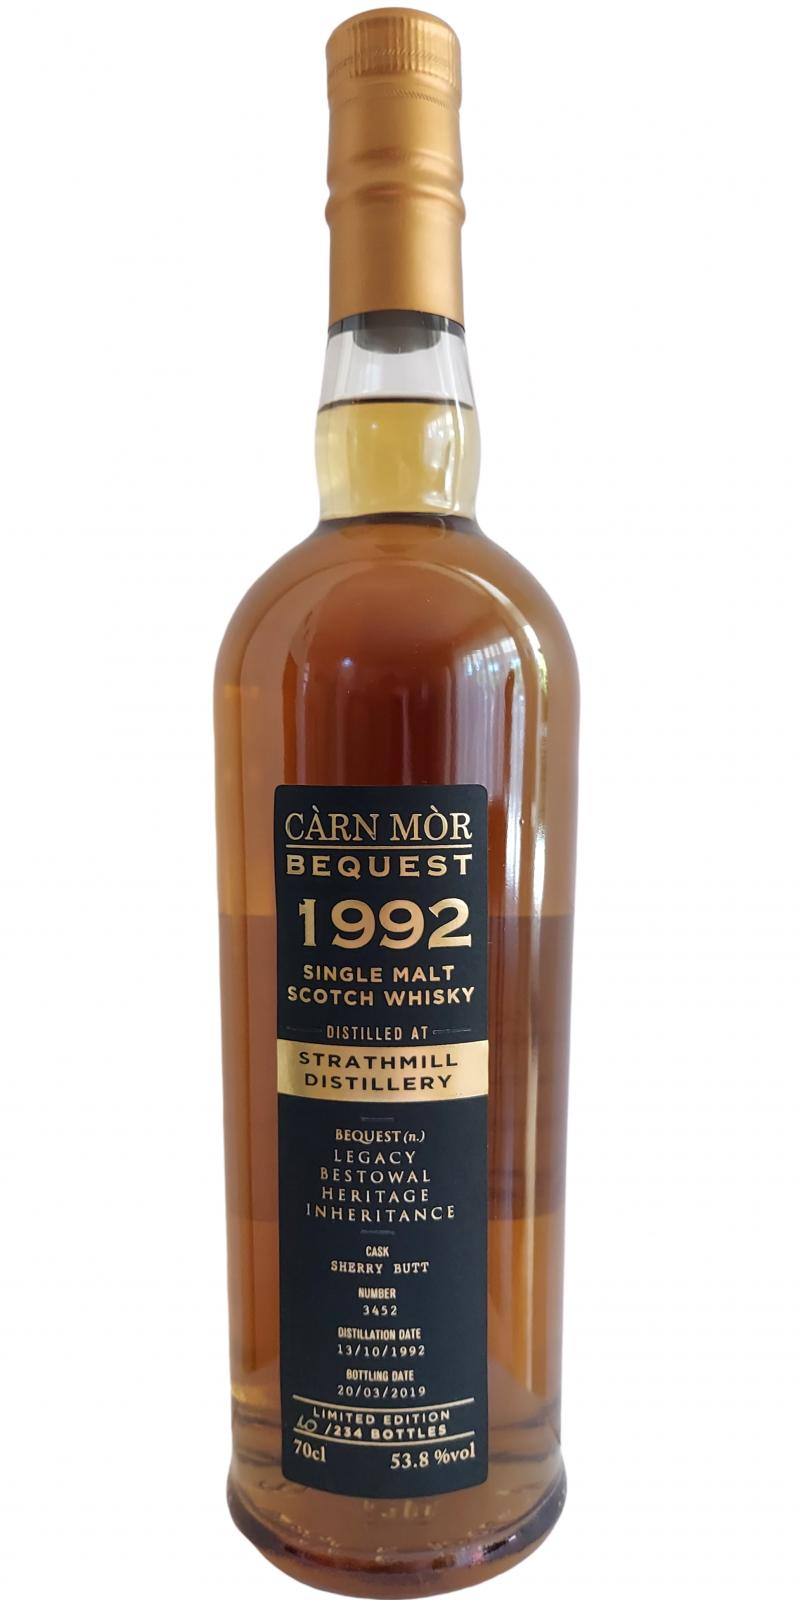 Carn Mor Bequest Strathmill 1992 27 Year Old Sherry Butt 53.8% 70cl